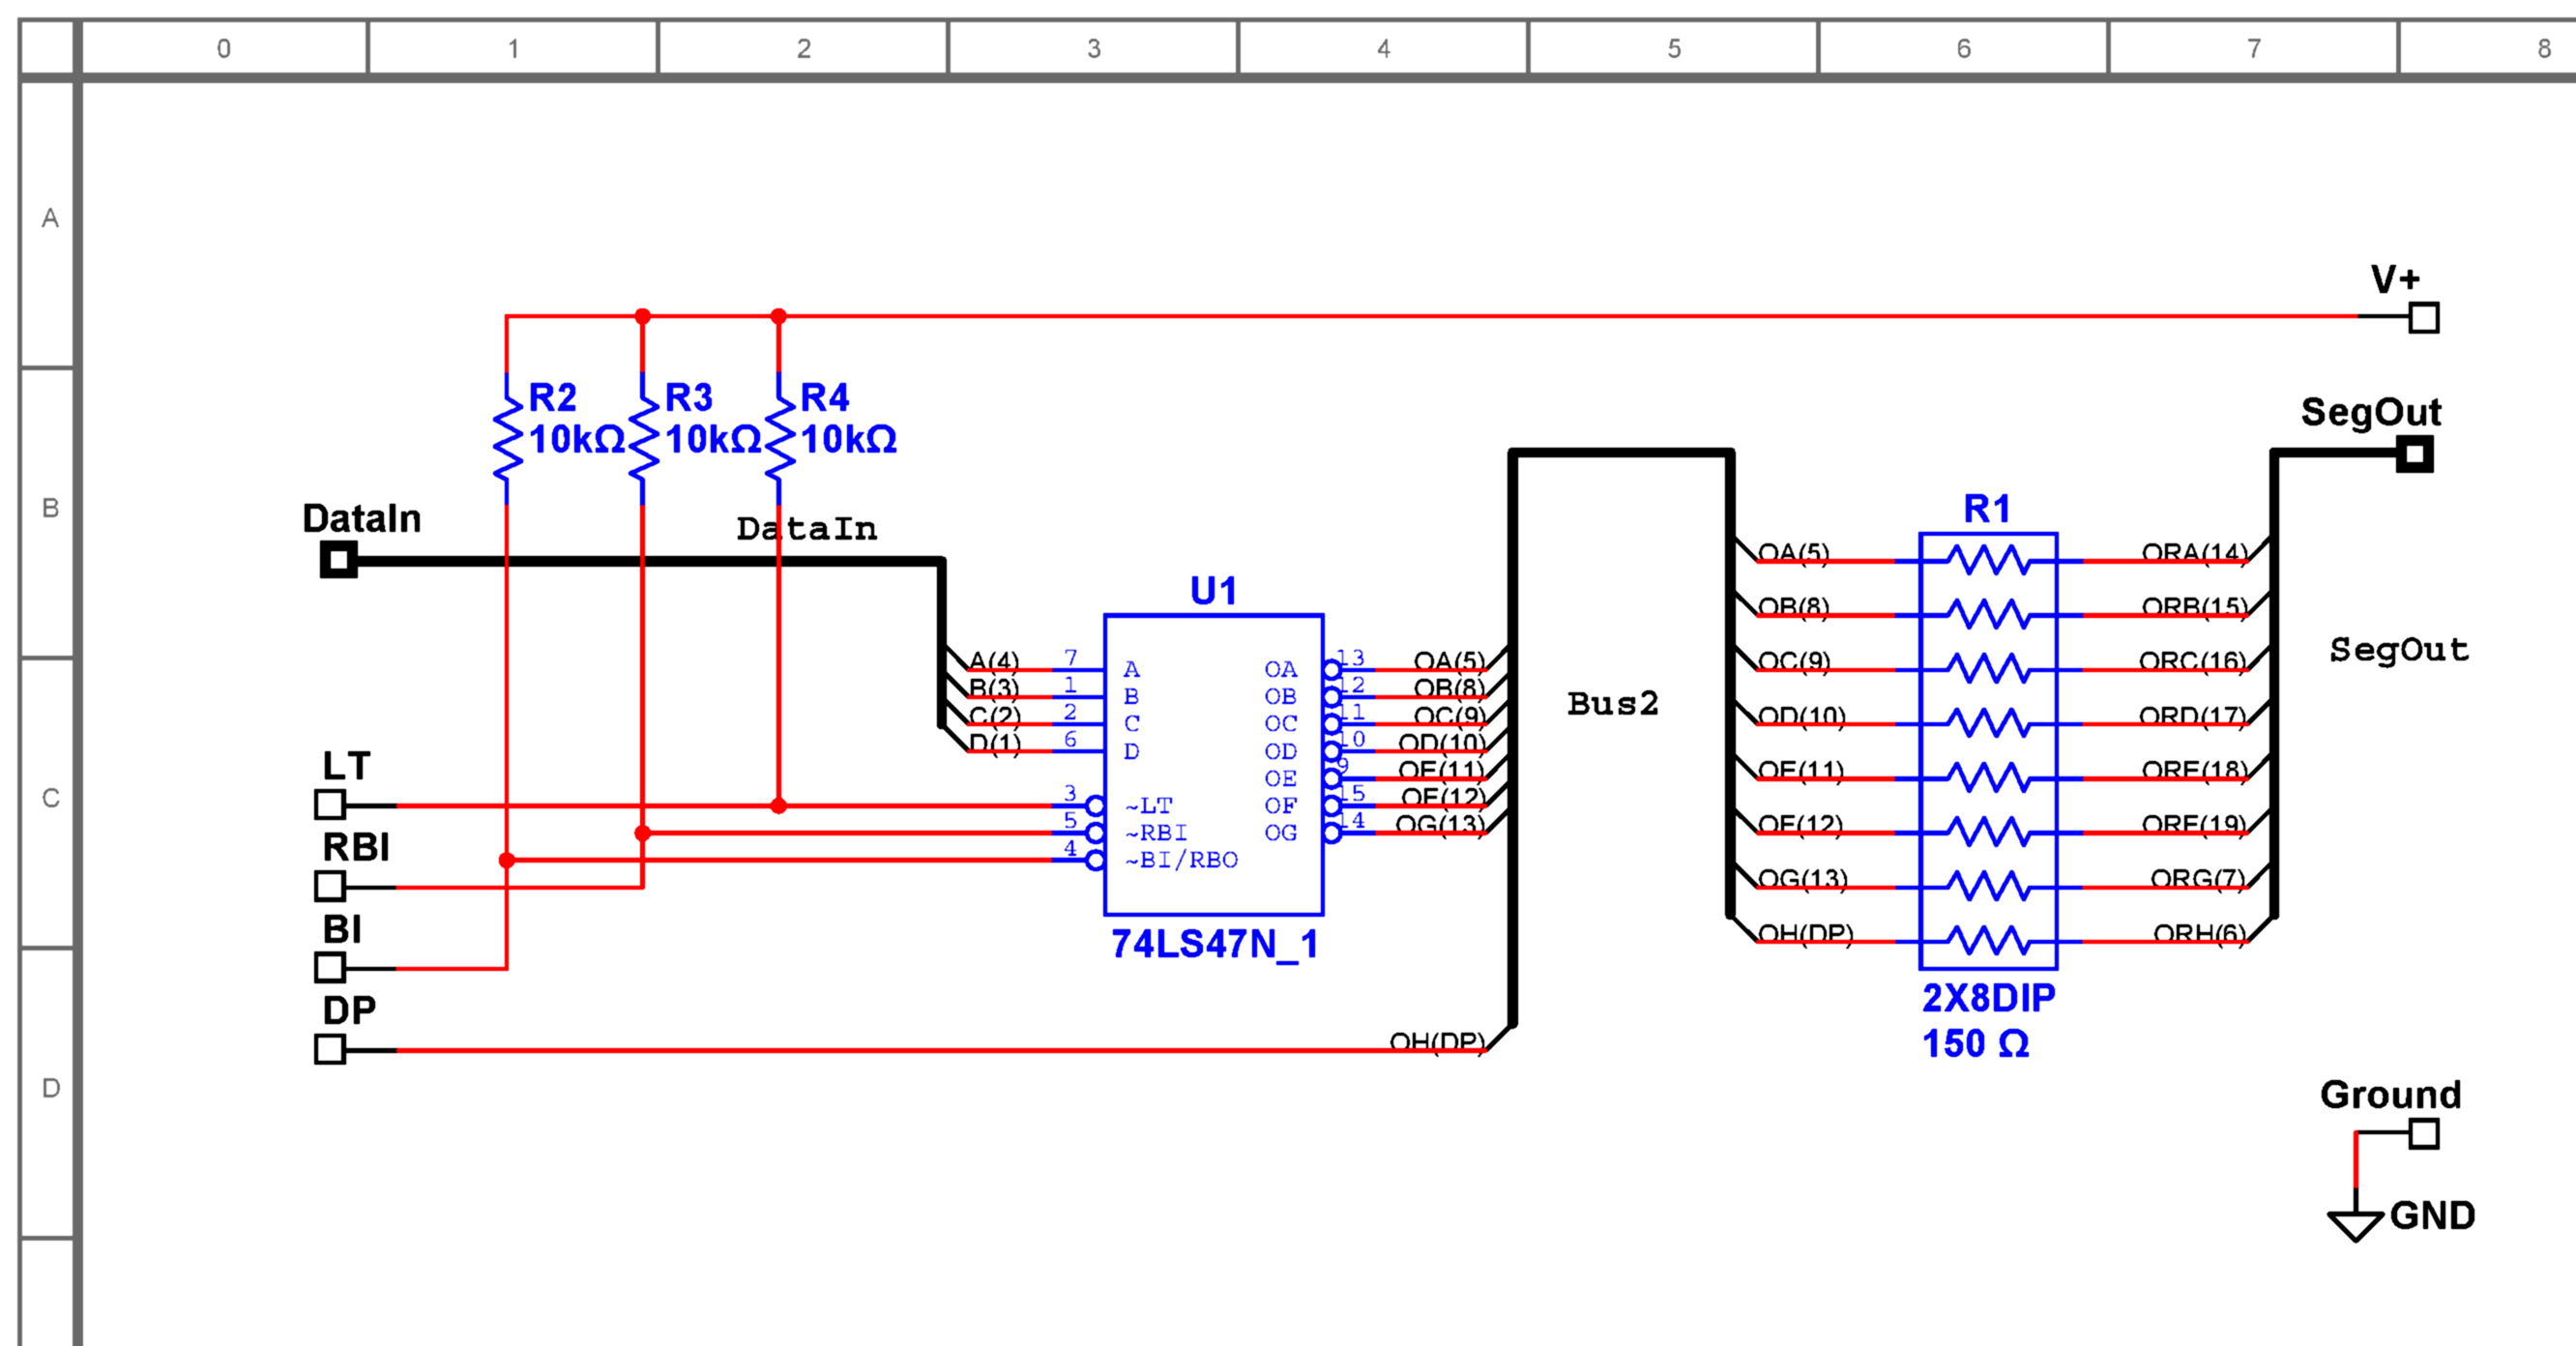 heidenhain encoder wiring diagram Collection-Heidenhain Encoder Wiring Diagram Fresh Ponent Decoder In Digital Electronics Circuit Ecen Intro to 9-o